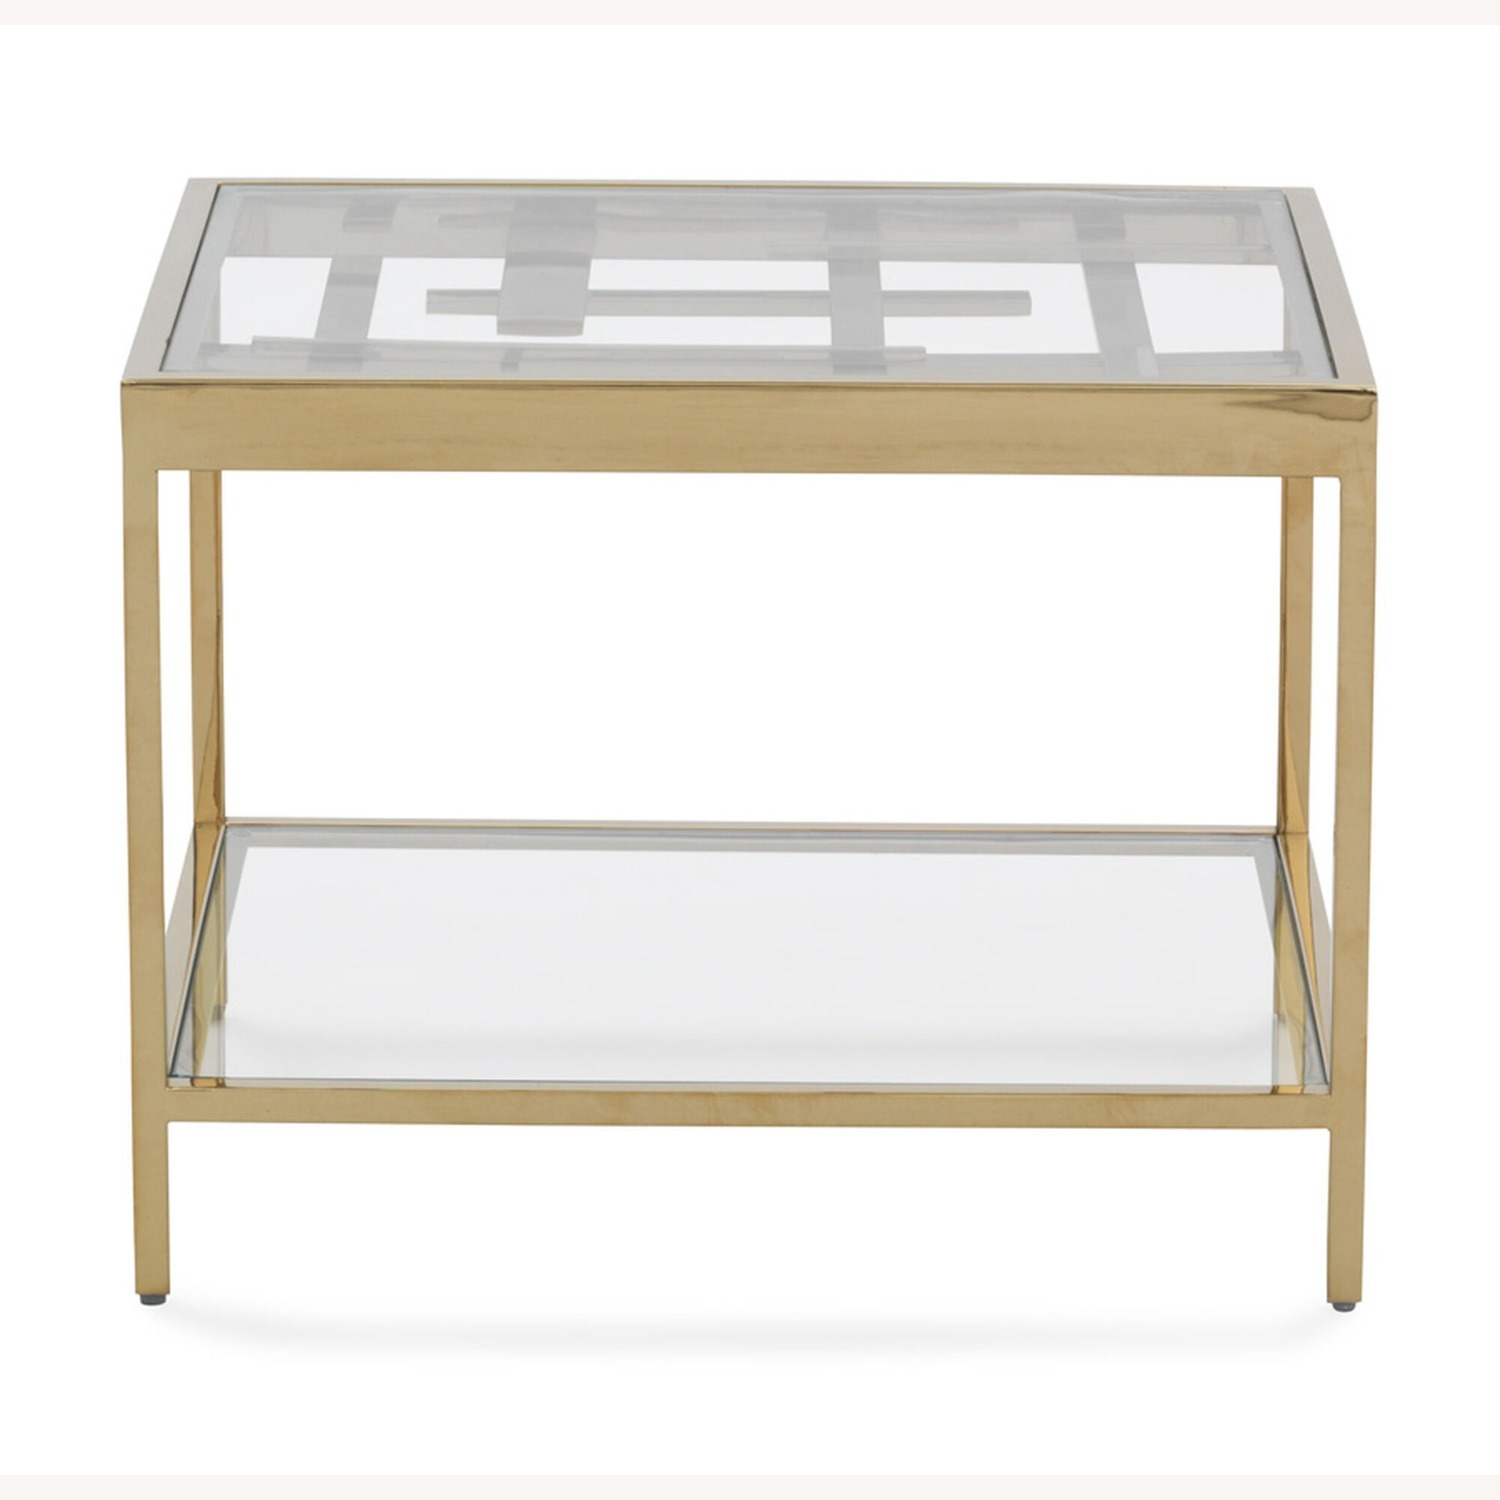 Mitchell Gold + Bob Williams Jules Side Tables - image-0